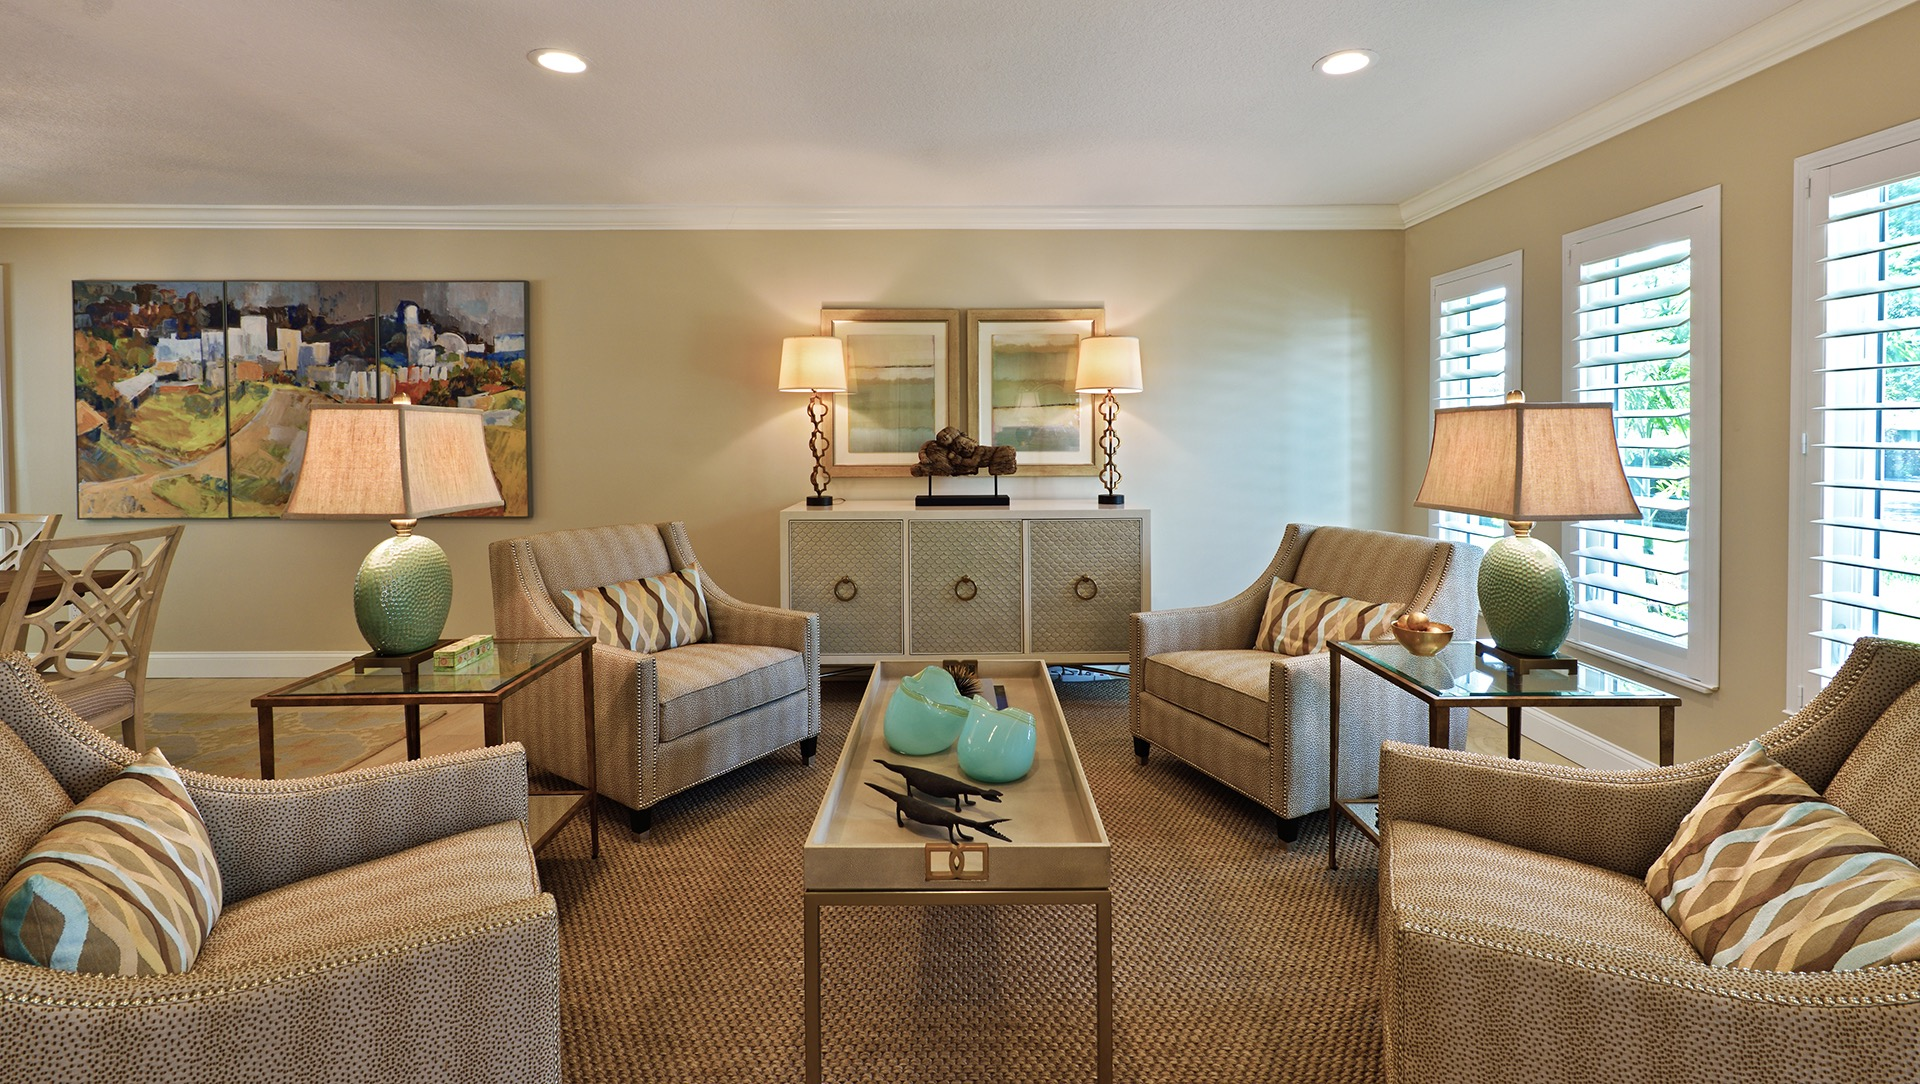 Elegance Comfortable American Living Room Interior (View 18 of 27)